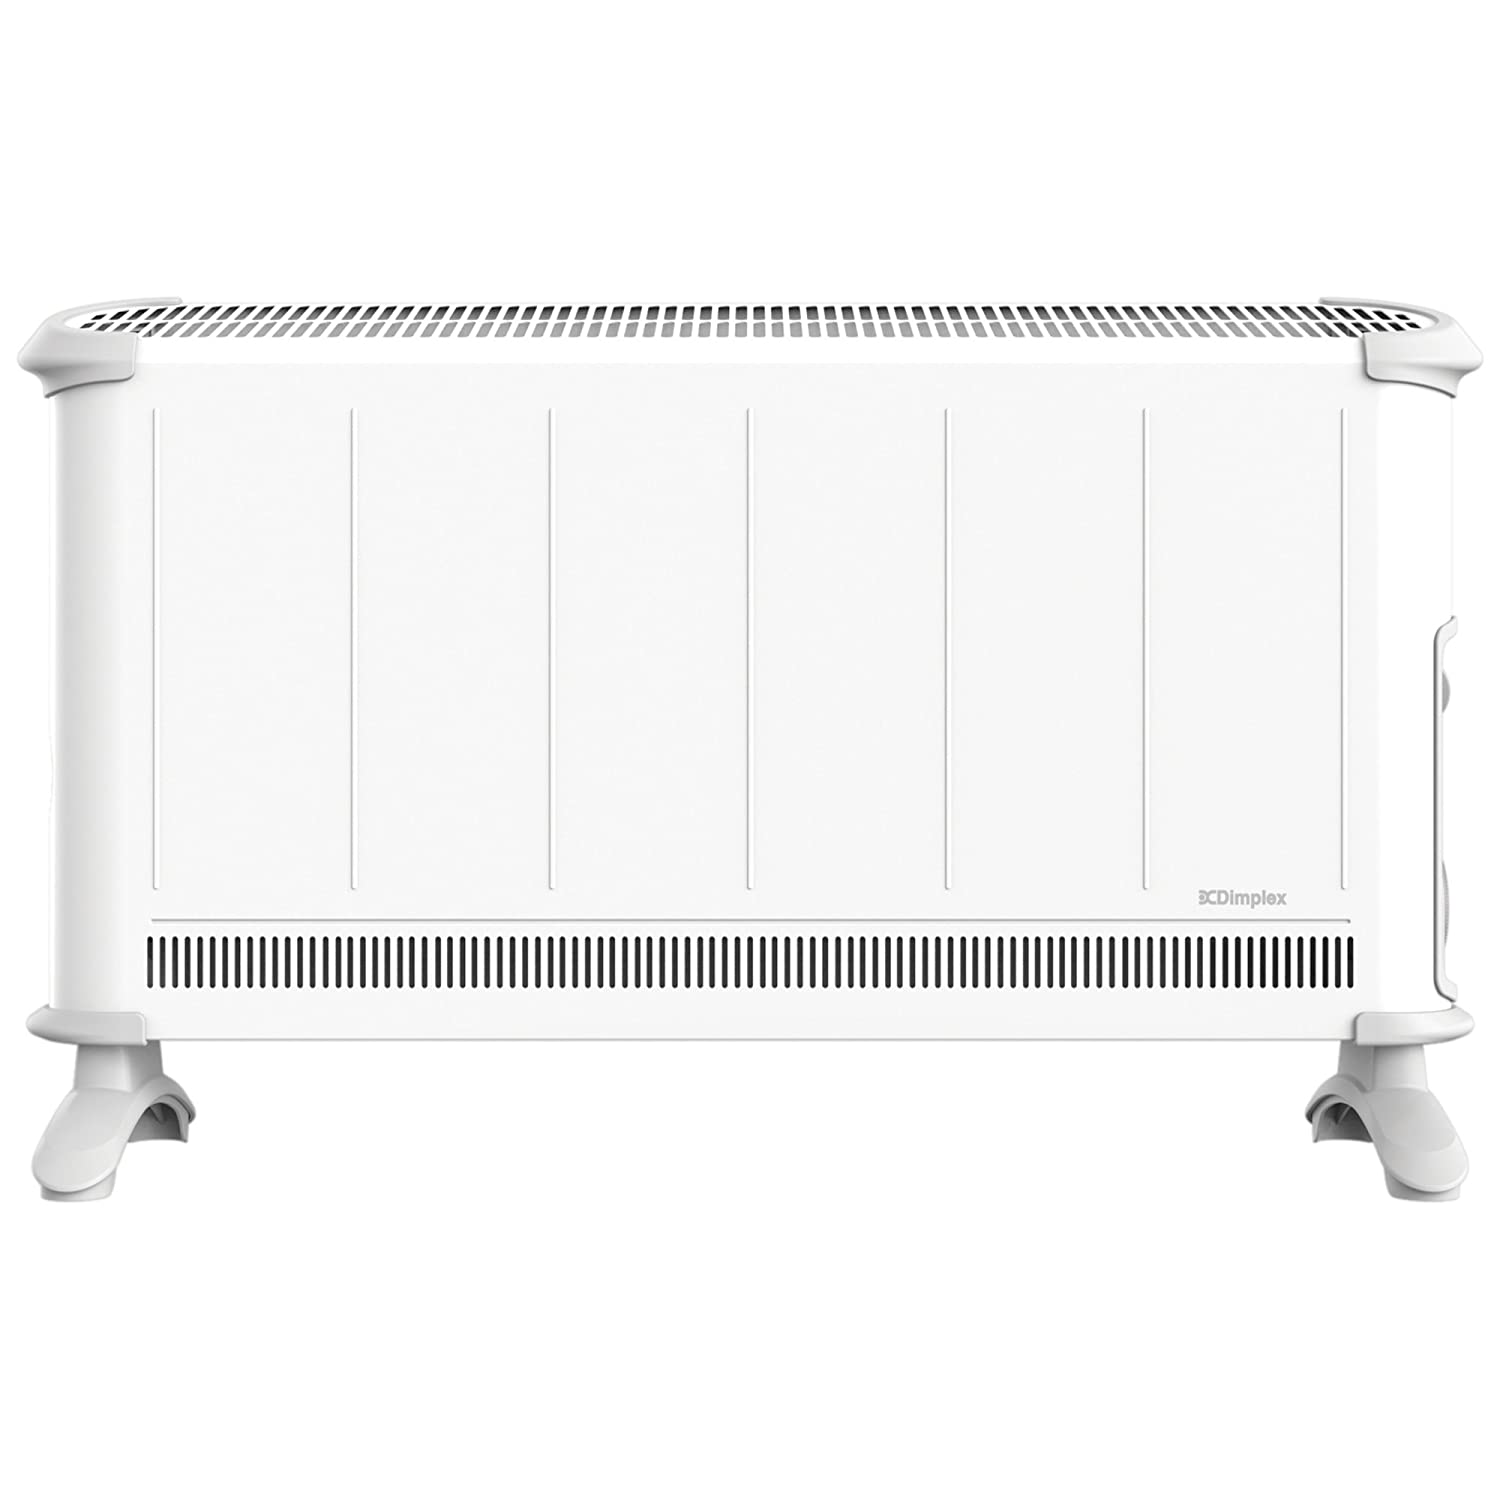 Amazon.com: Dimplex Convector with Thermostat Choice of Heat Settings and Timer, 3 Kilowatt, White by Dimplex: Appliances